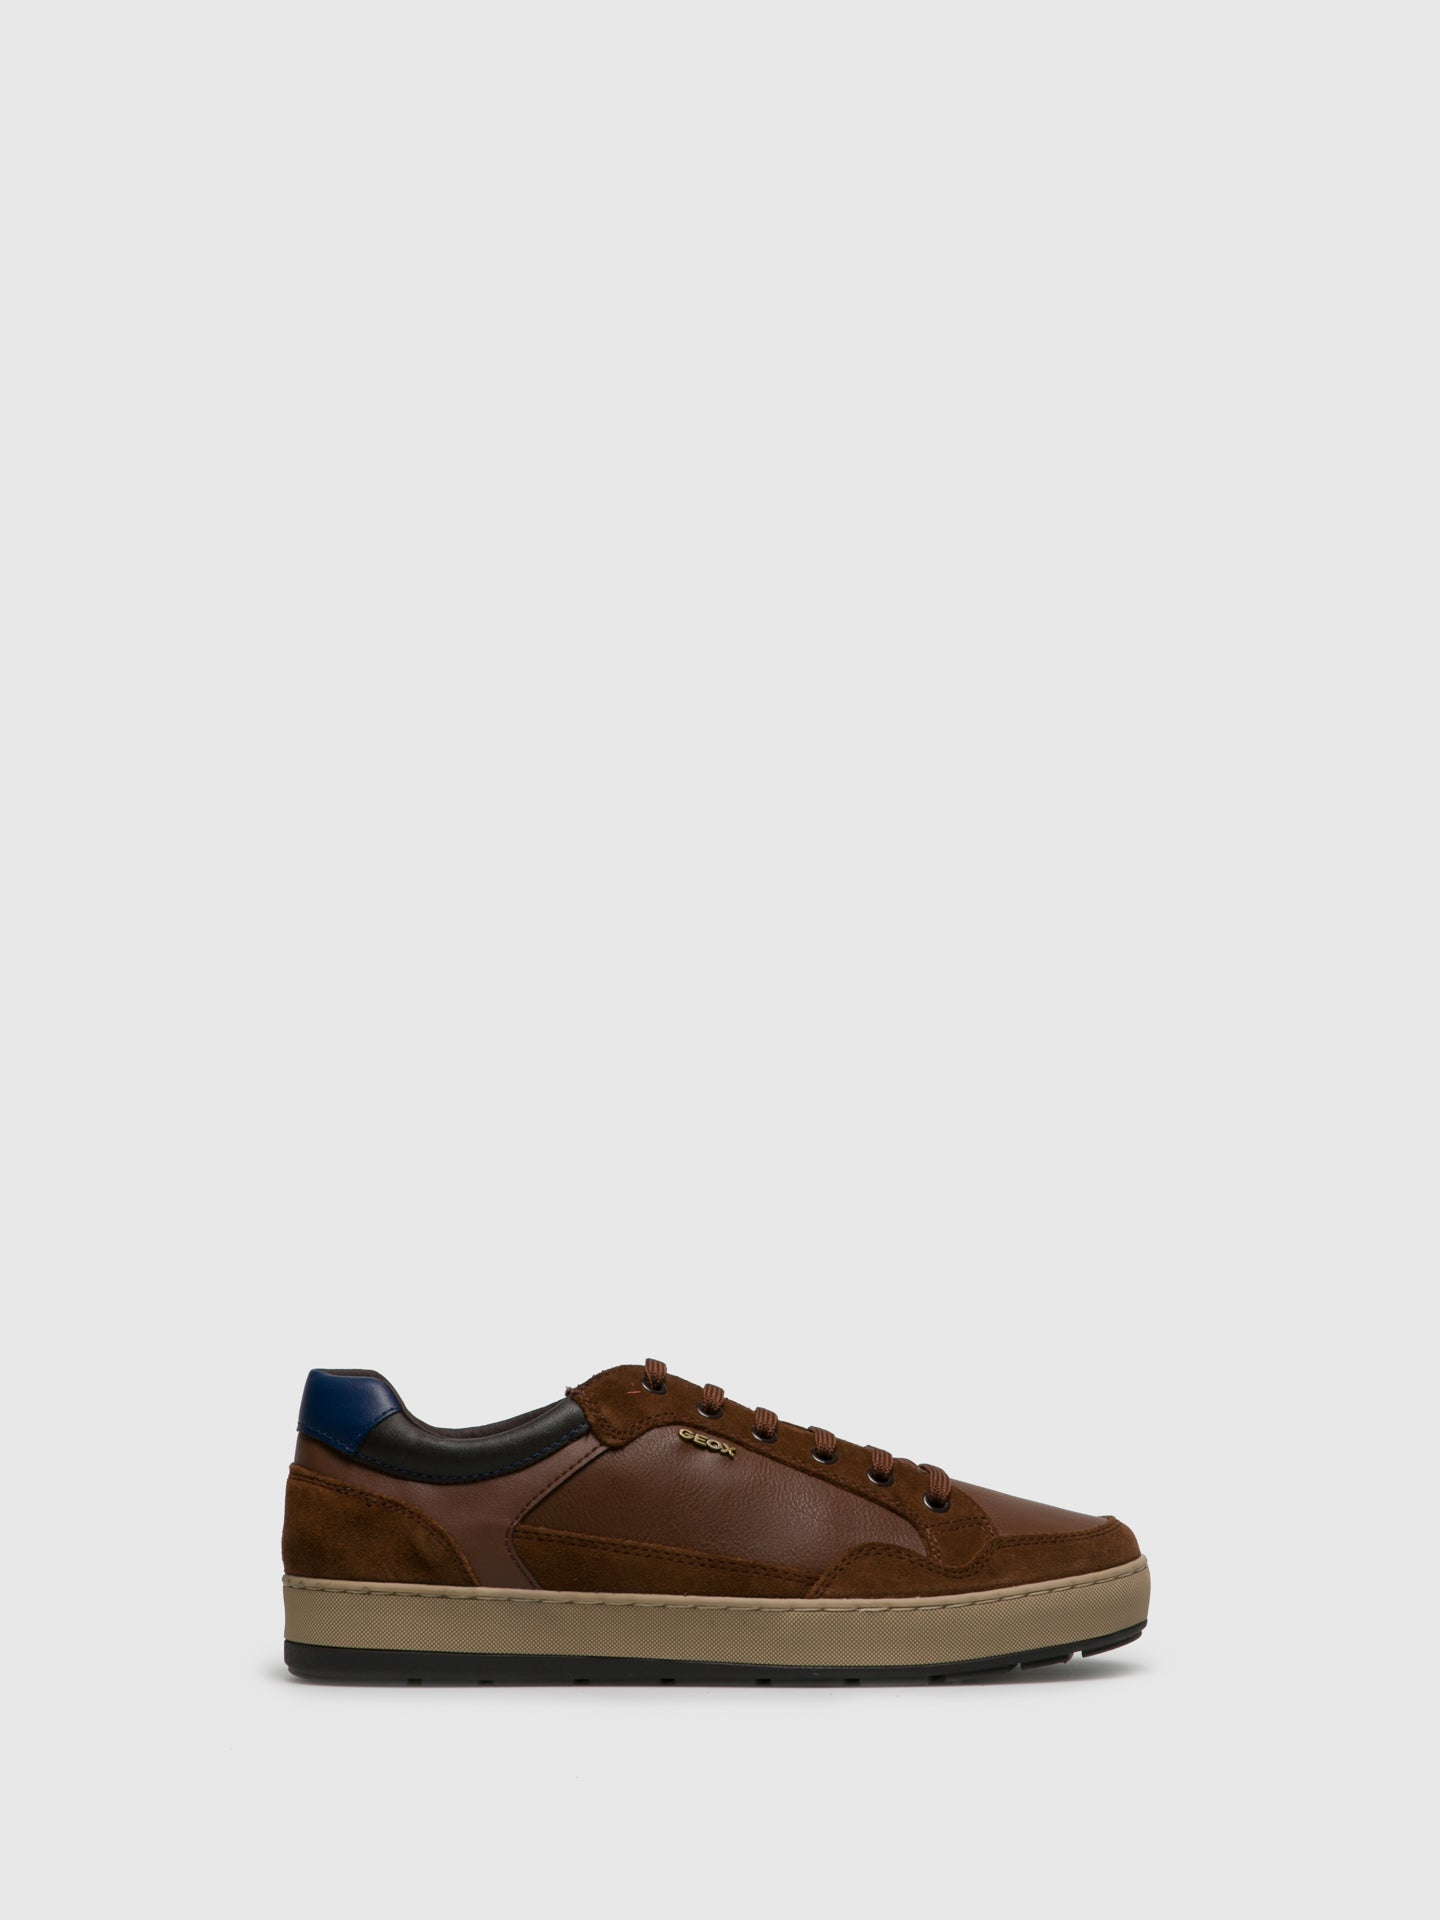 Geox Brown Lace-up Shoes